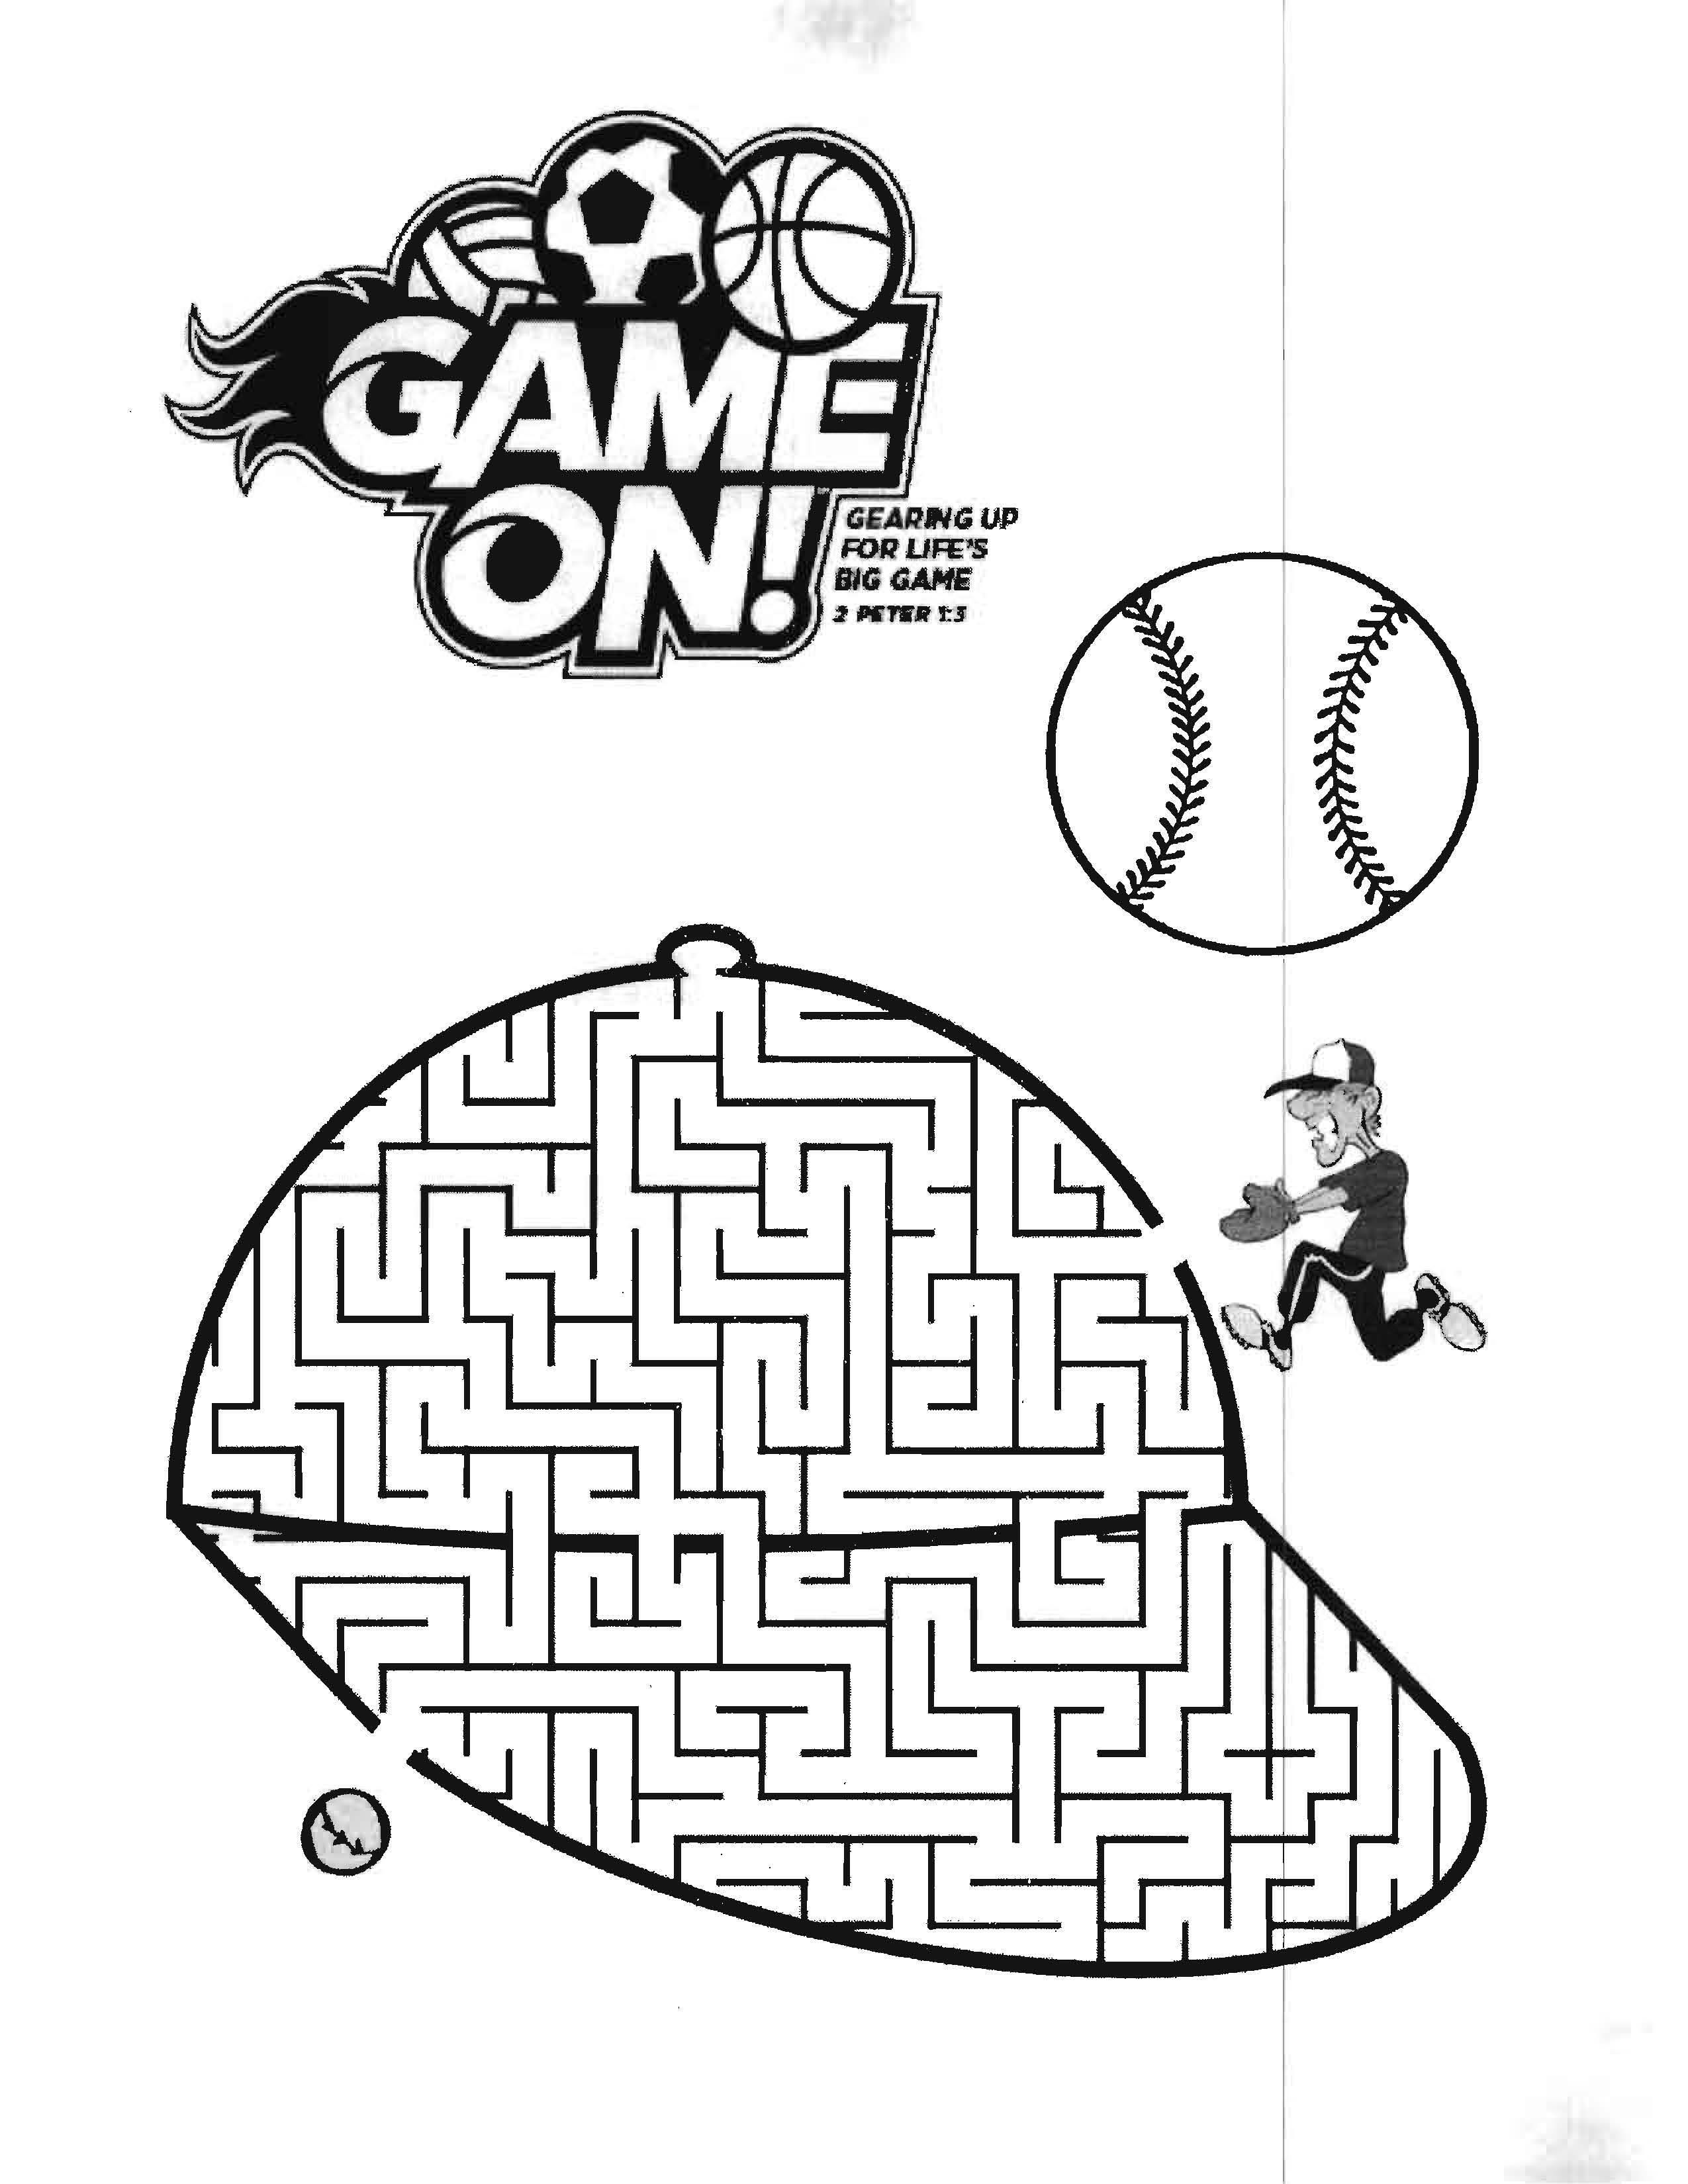 Game On Vbs 2018 Coloring Sheet Vbs 2018 Game On